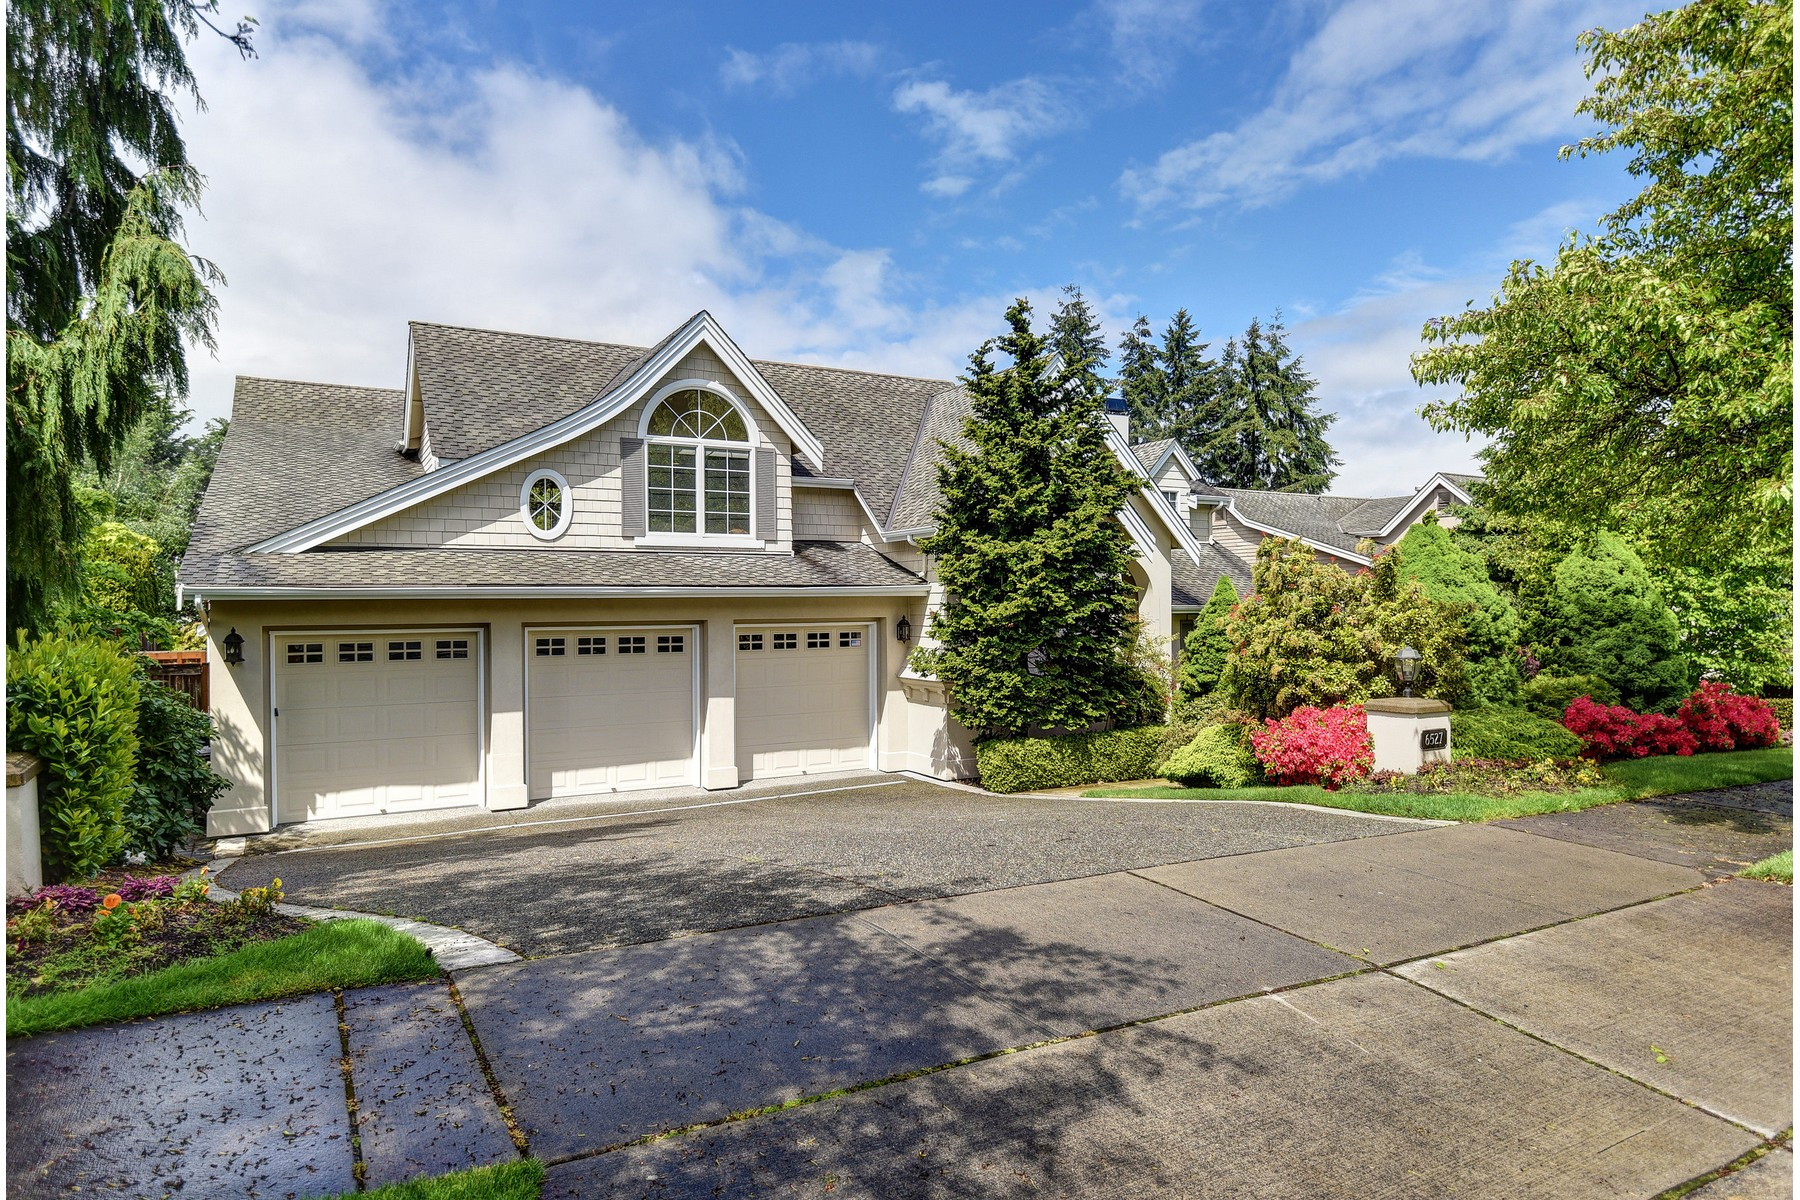 Single Family Home for Sale at Houghton Traditional 6527 112th Ave NE Kirkland, Washington 98033 United States